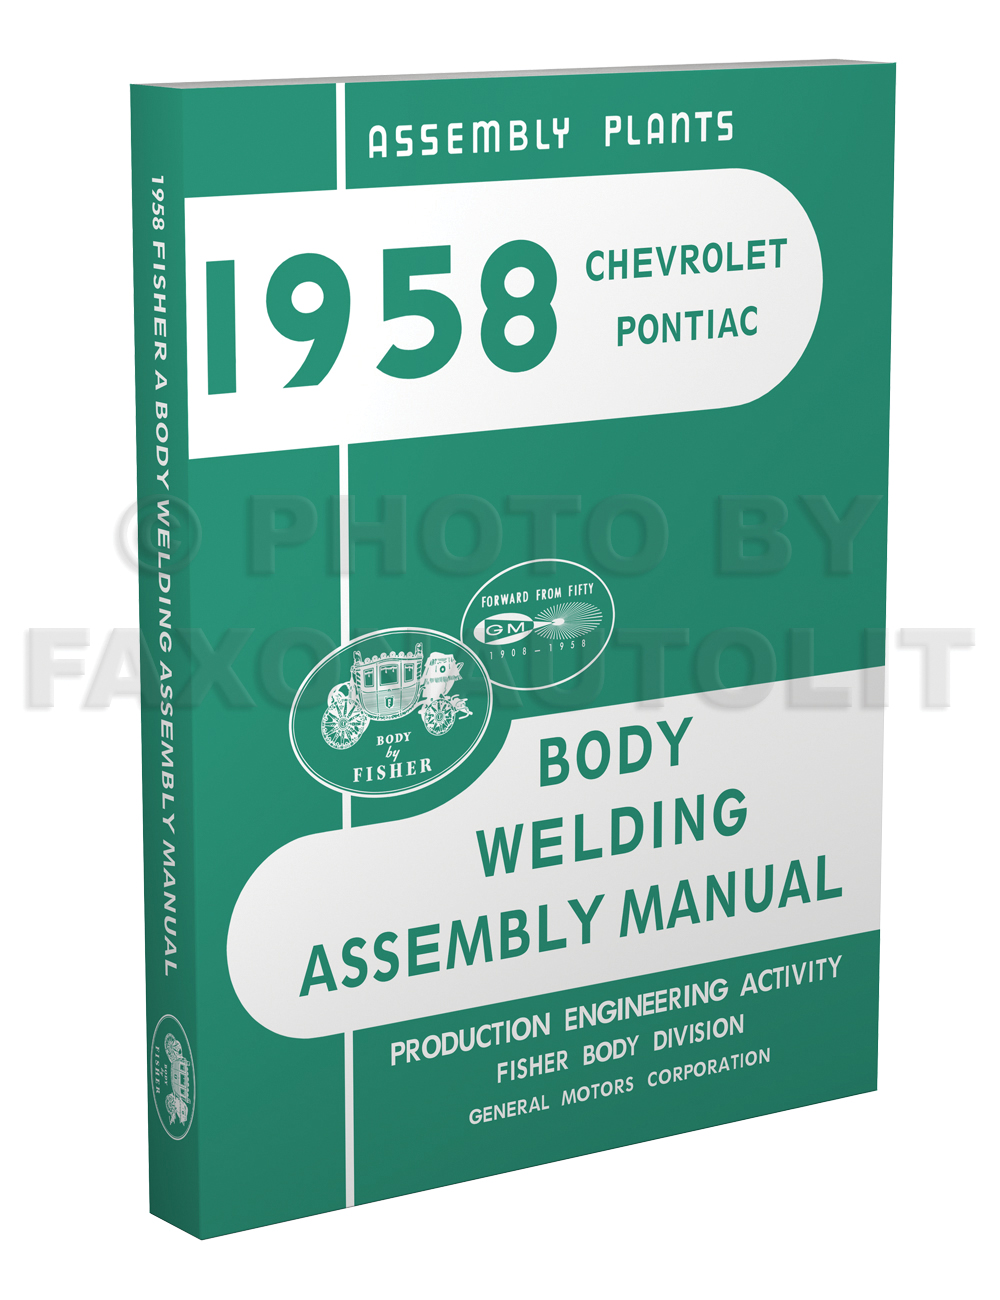 1958 Fisher Body Welding Assembly Manual Reprint - Chevrolet/Pontiac